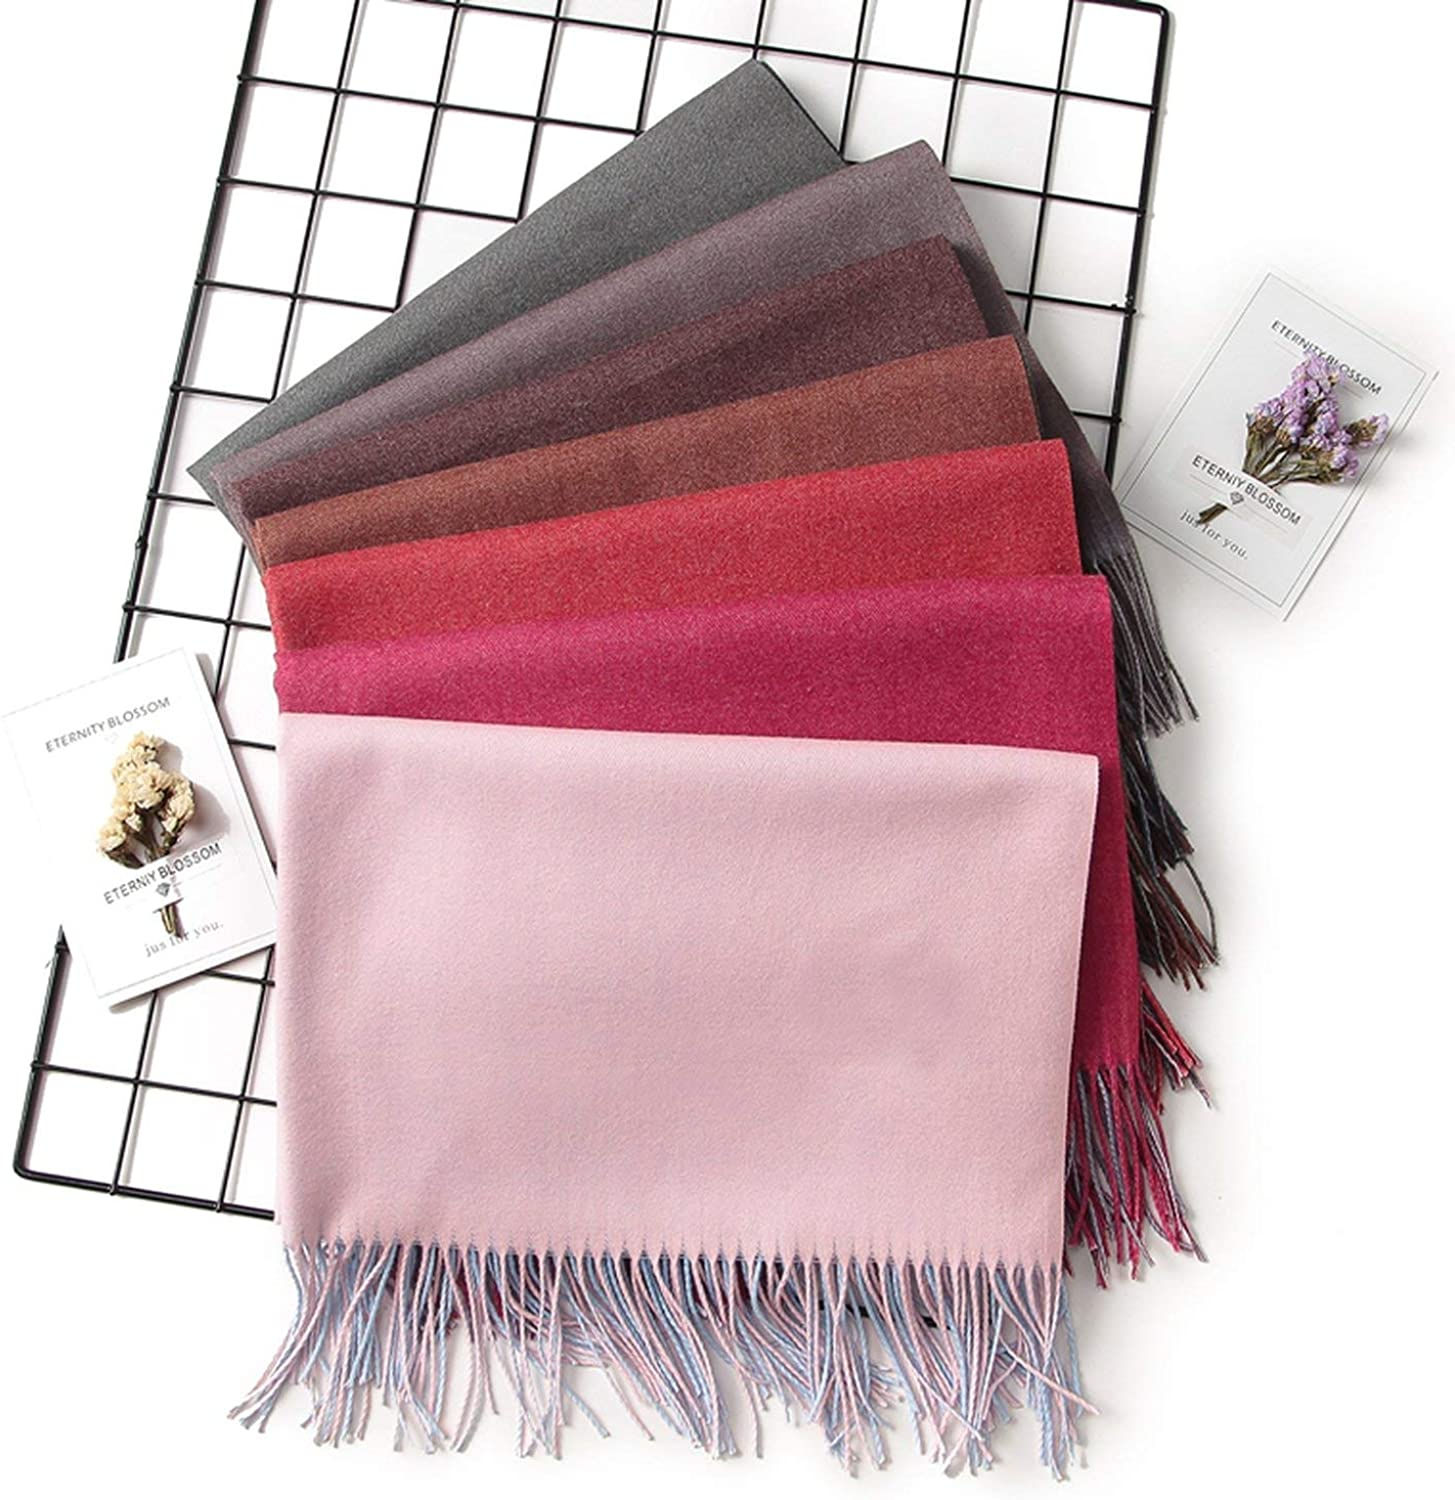 2019 Winter Women Scarf Fashion Solid Soft Cashmere Scarves for Lady Pashmina Shawls Wrap,c16,Russian Federation